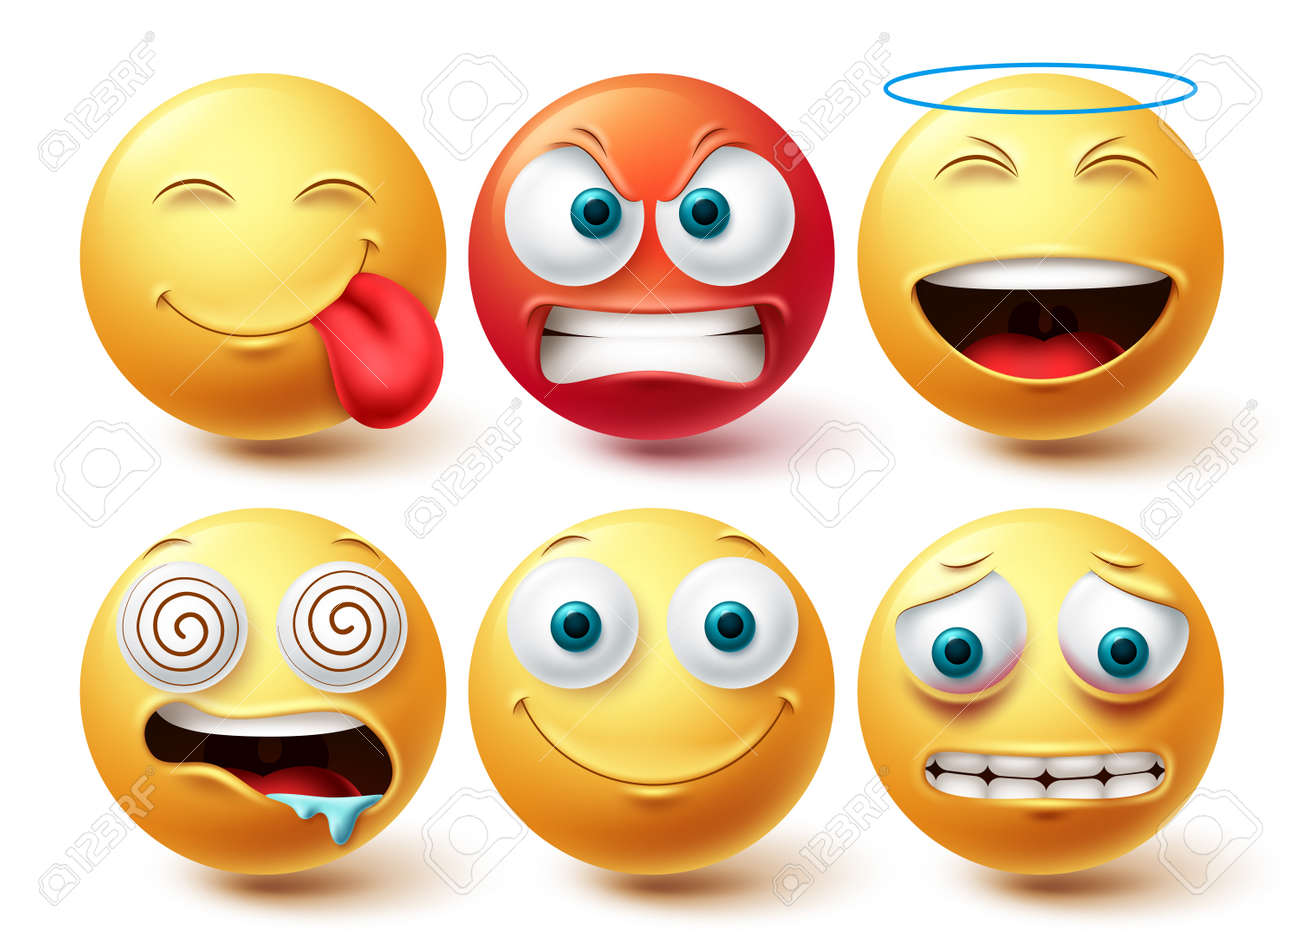 Smiley emoji face vector set. Smileys and emoticon happy, hungry and angry icon collection isolated in white background for graphic design elements. Vector illustration - 171929741